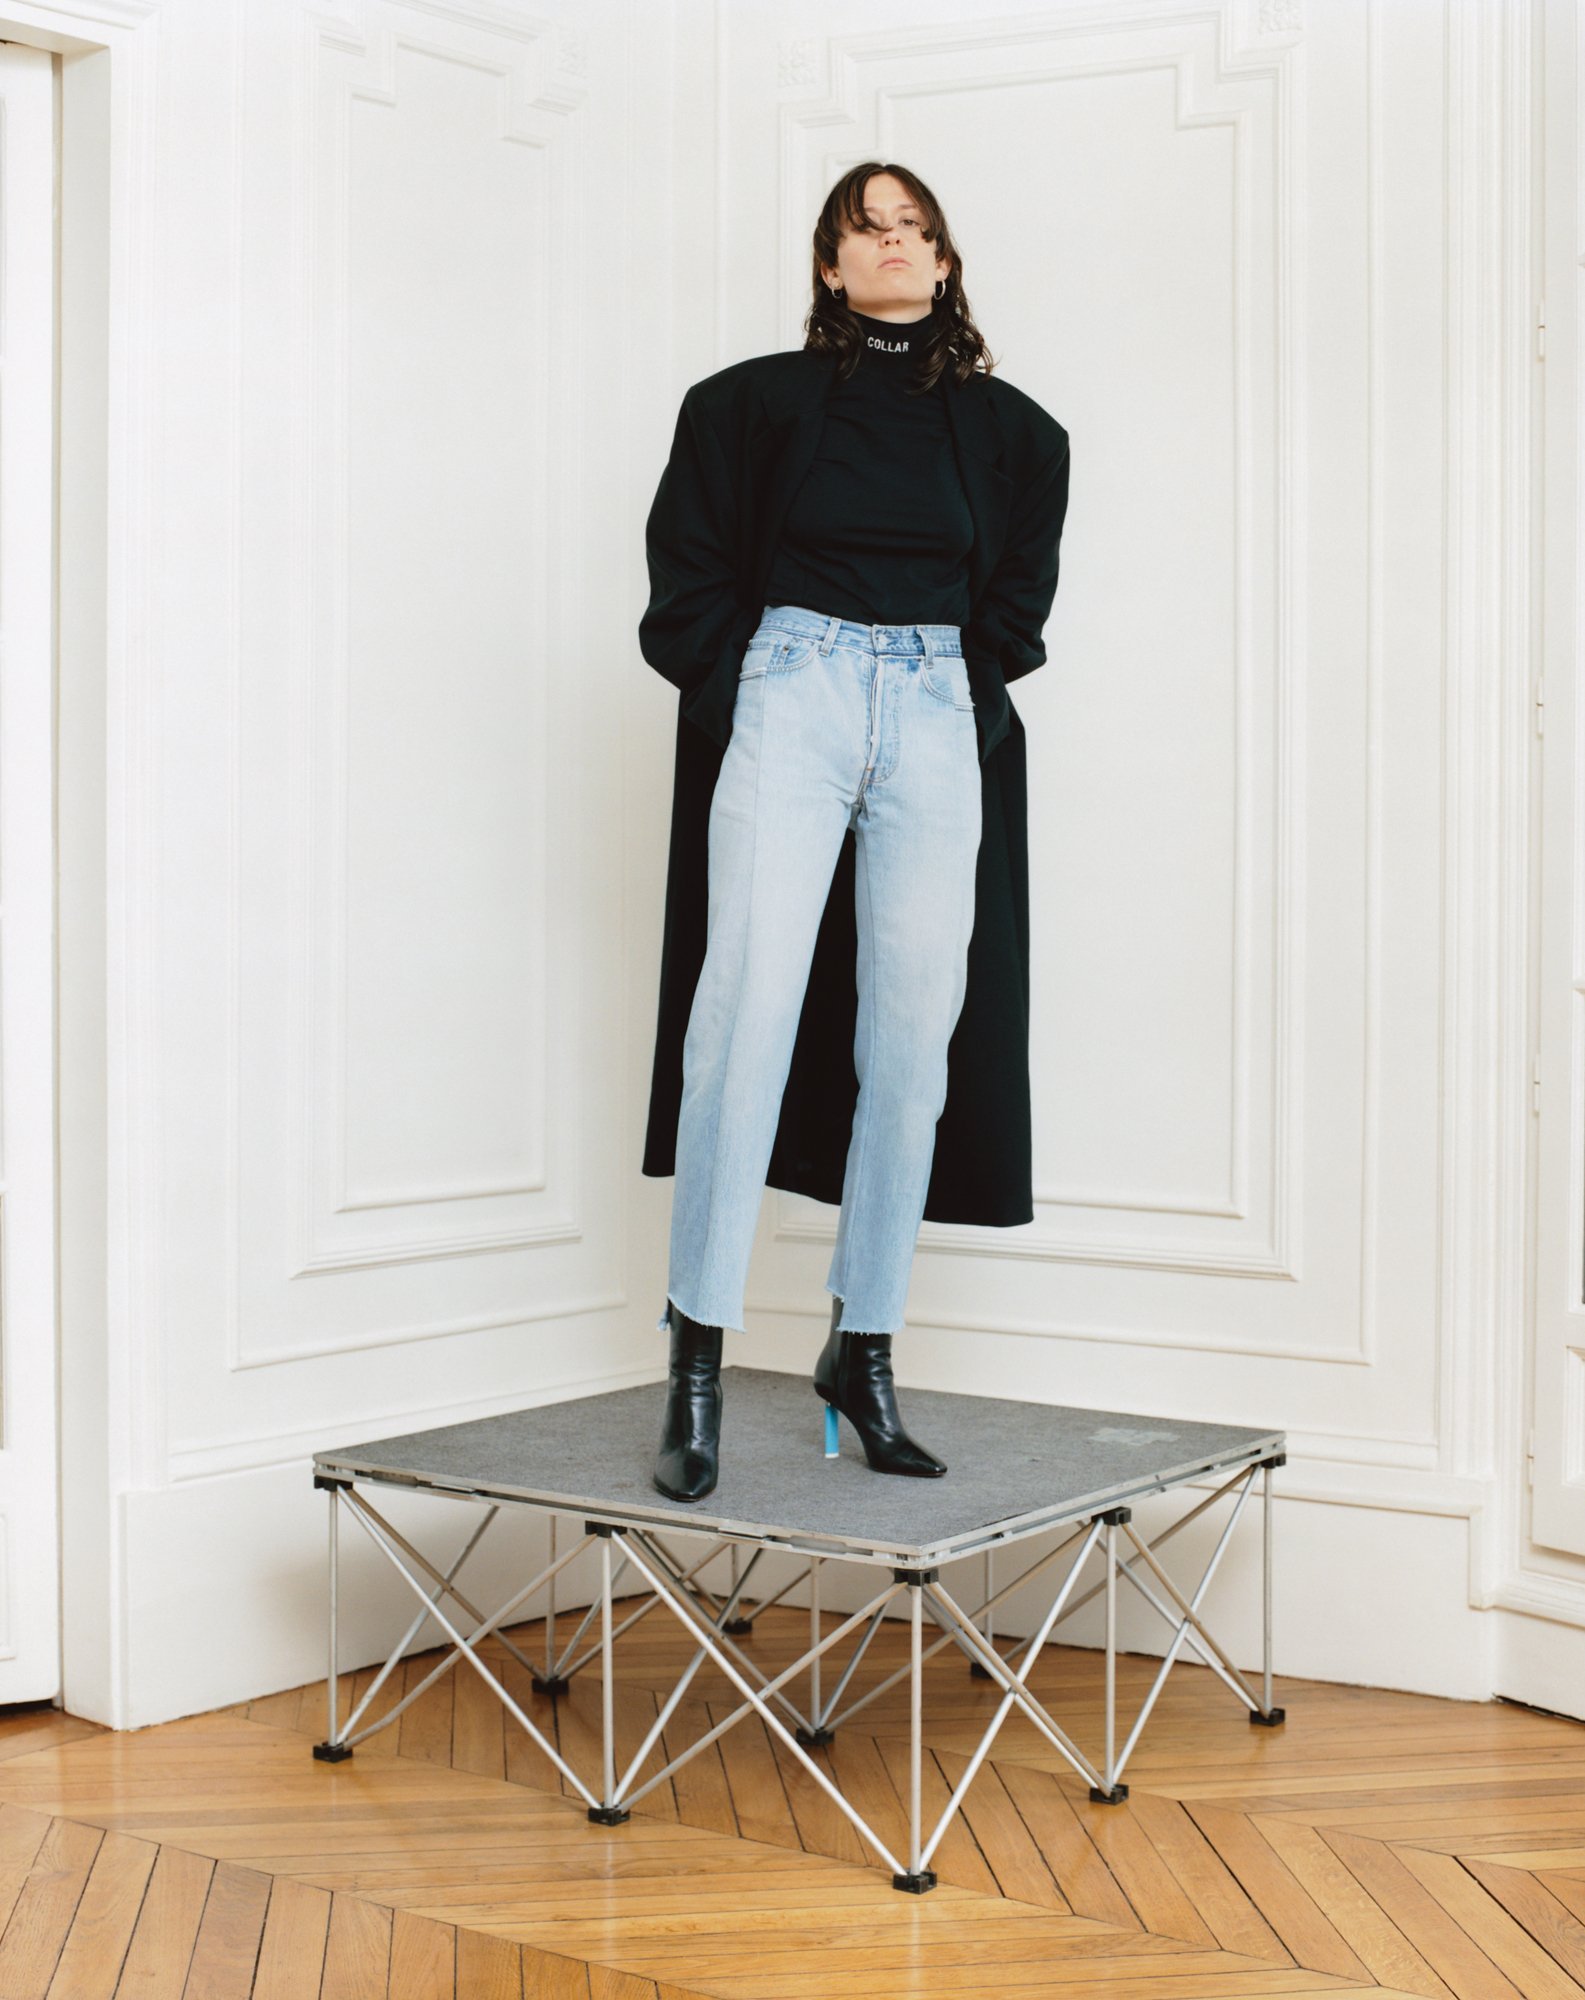 Vetements for Style.com